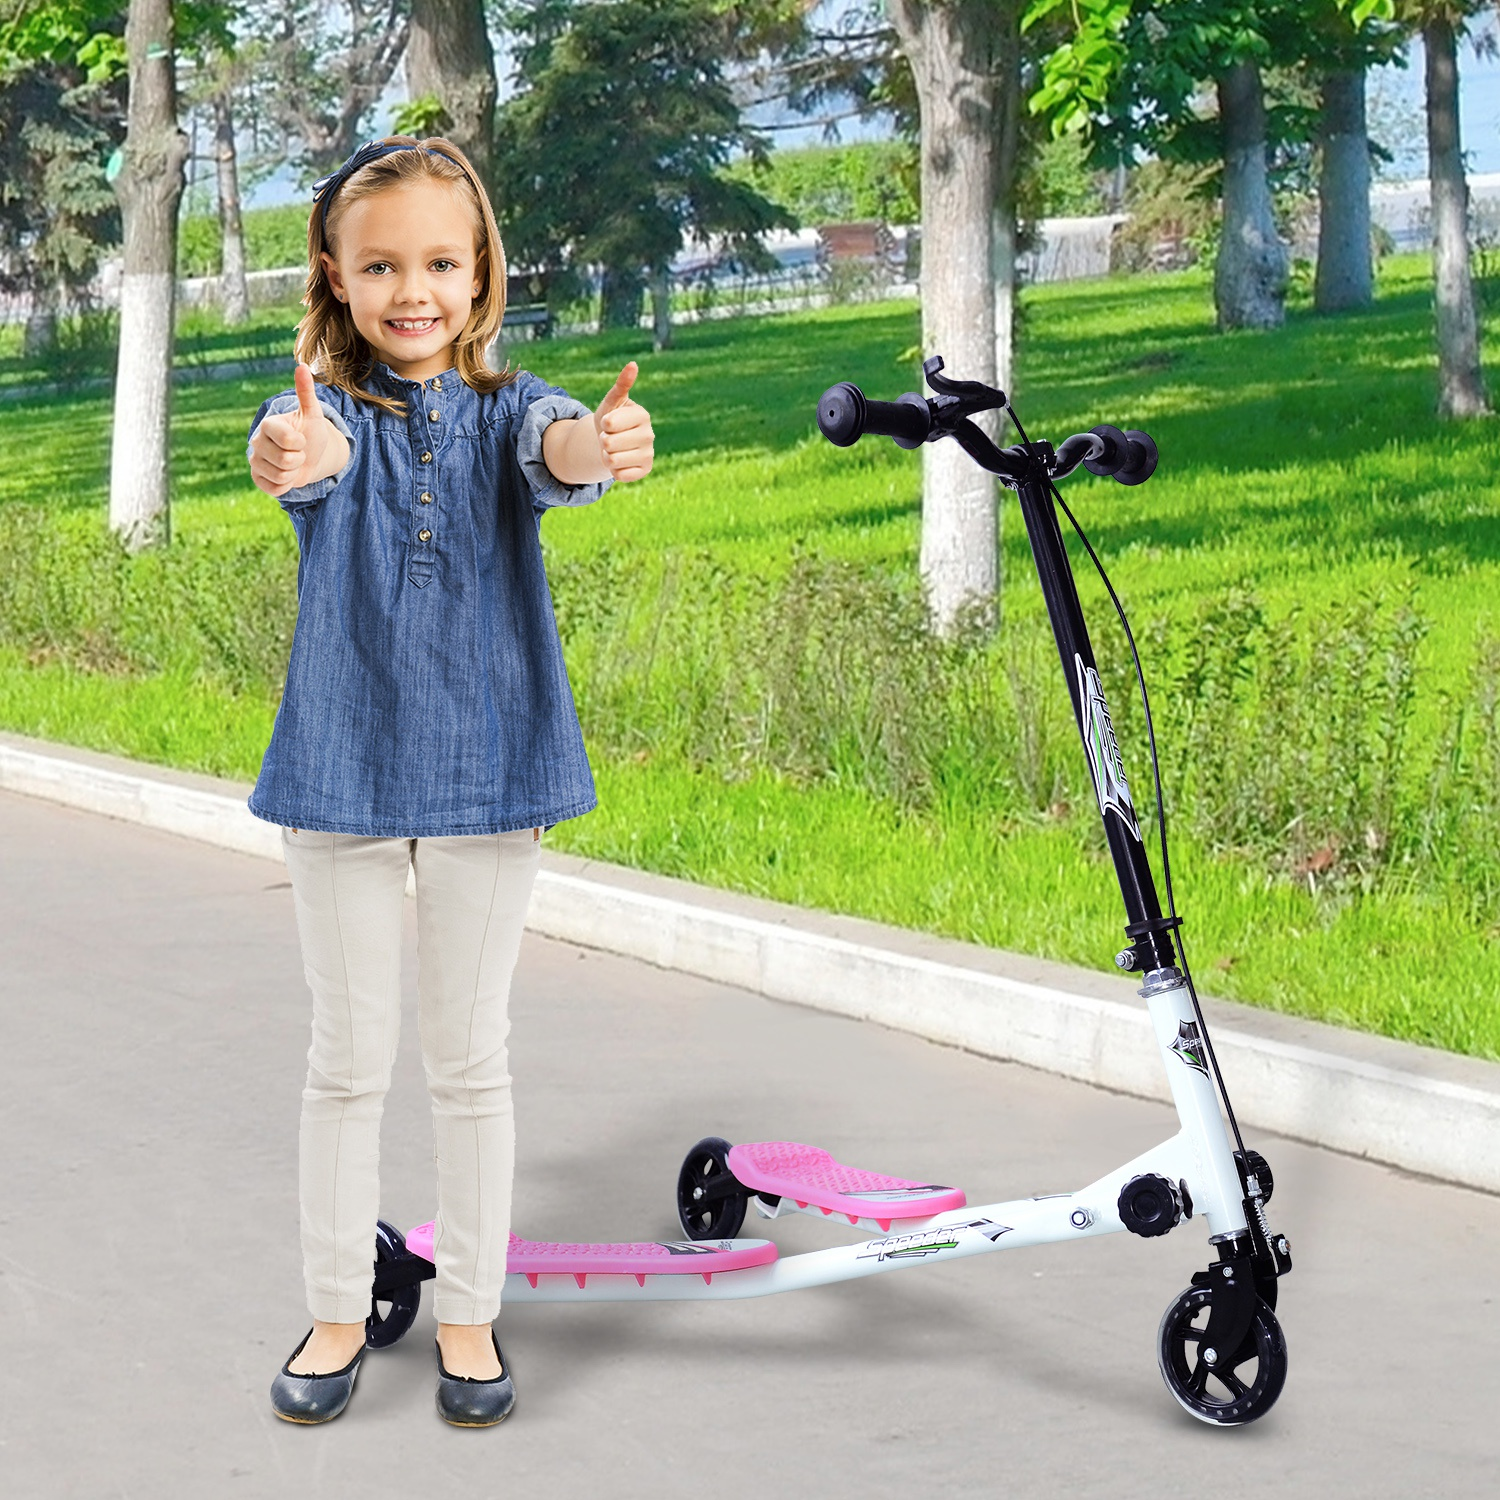 Soozier HOMCOM Foldable Children Tri Scooter 3 Wheels Speeder Slider Winged Push Motion Pink